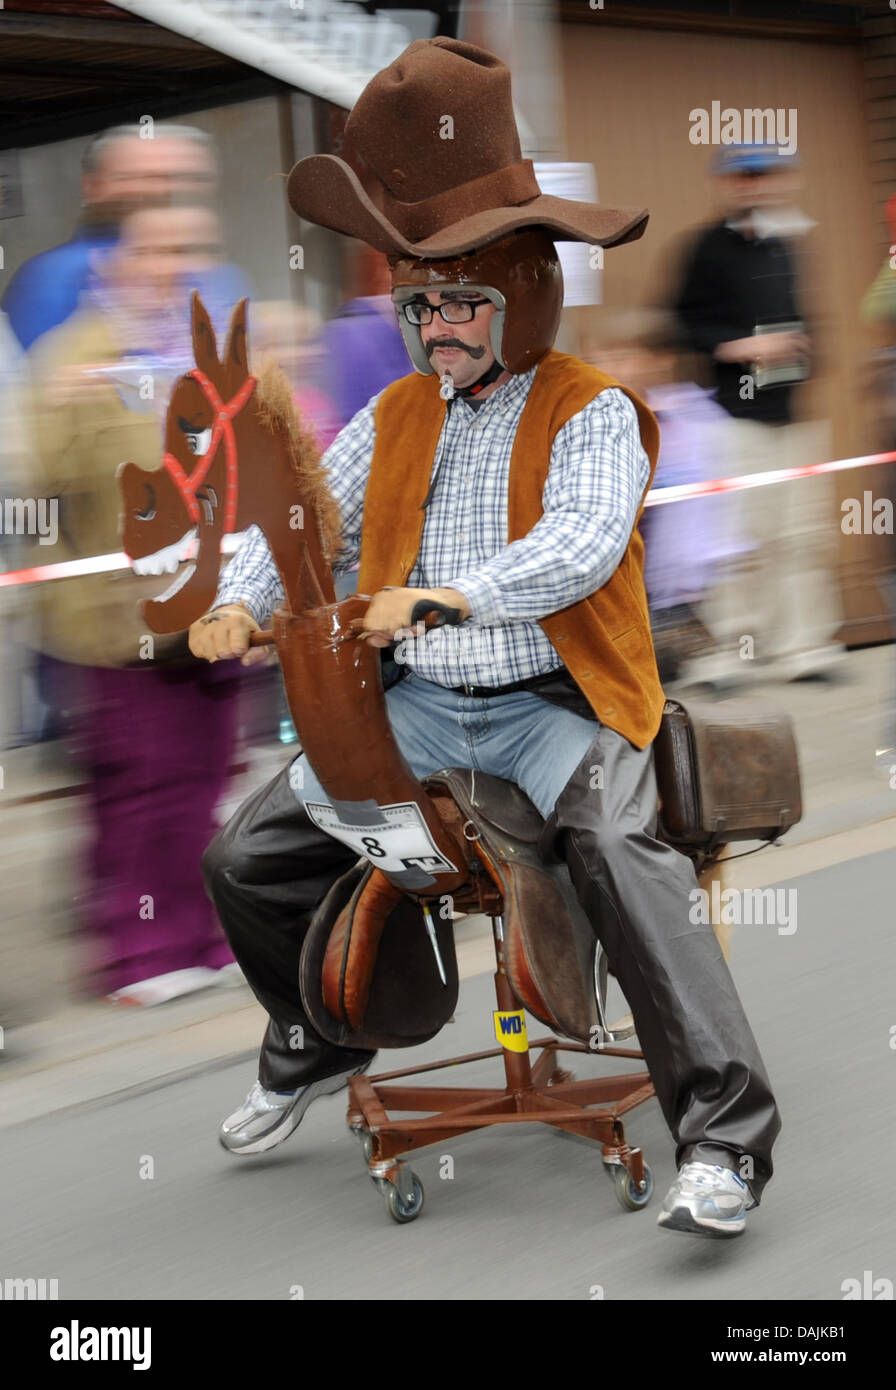 Unusual office chairs Exciting Cowboy Heiko Winter Races His Unusual Office Chair Down The Course At The 3rd German Championships Alamy Racing In An Office Chair Stock Photos Racing In An Office Chair